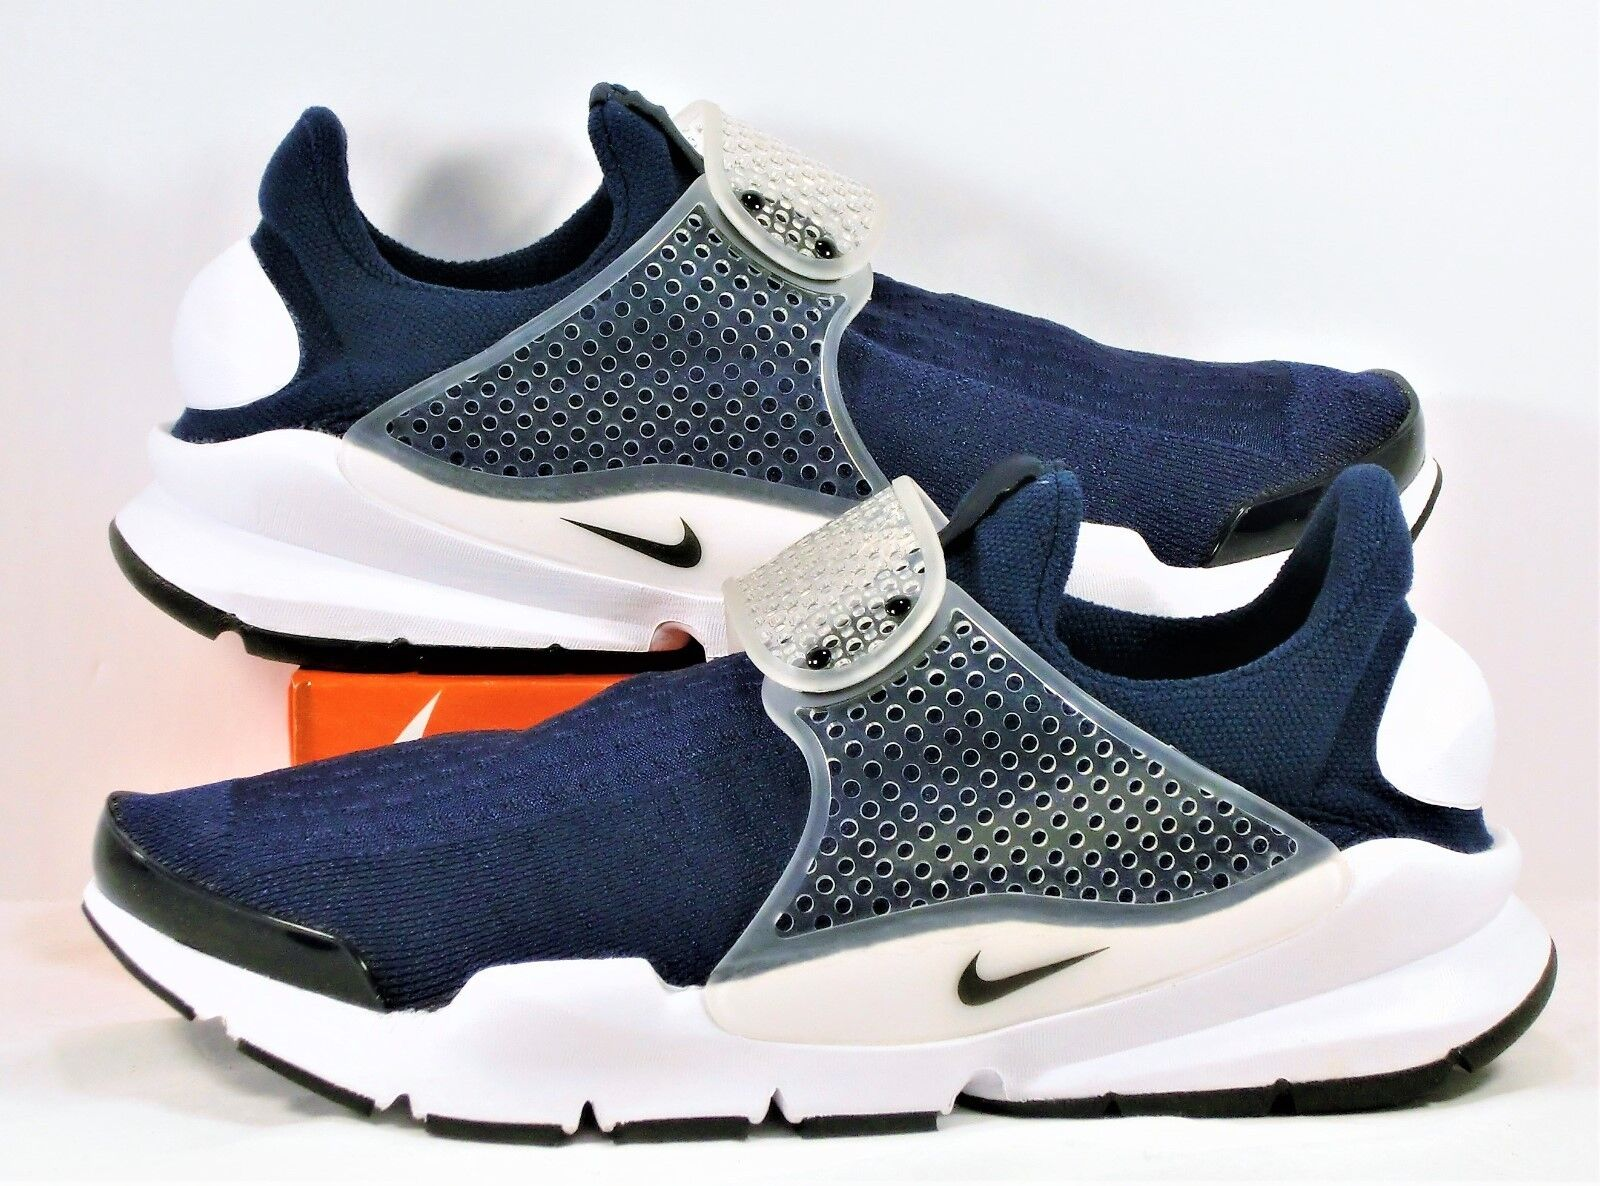 Nike Sock Dart KJCRD Midnight Navy Running & Training shoes Sz 11 NEW 819686 400